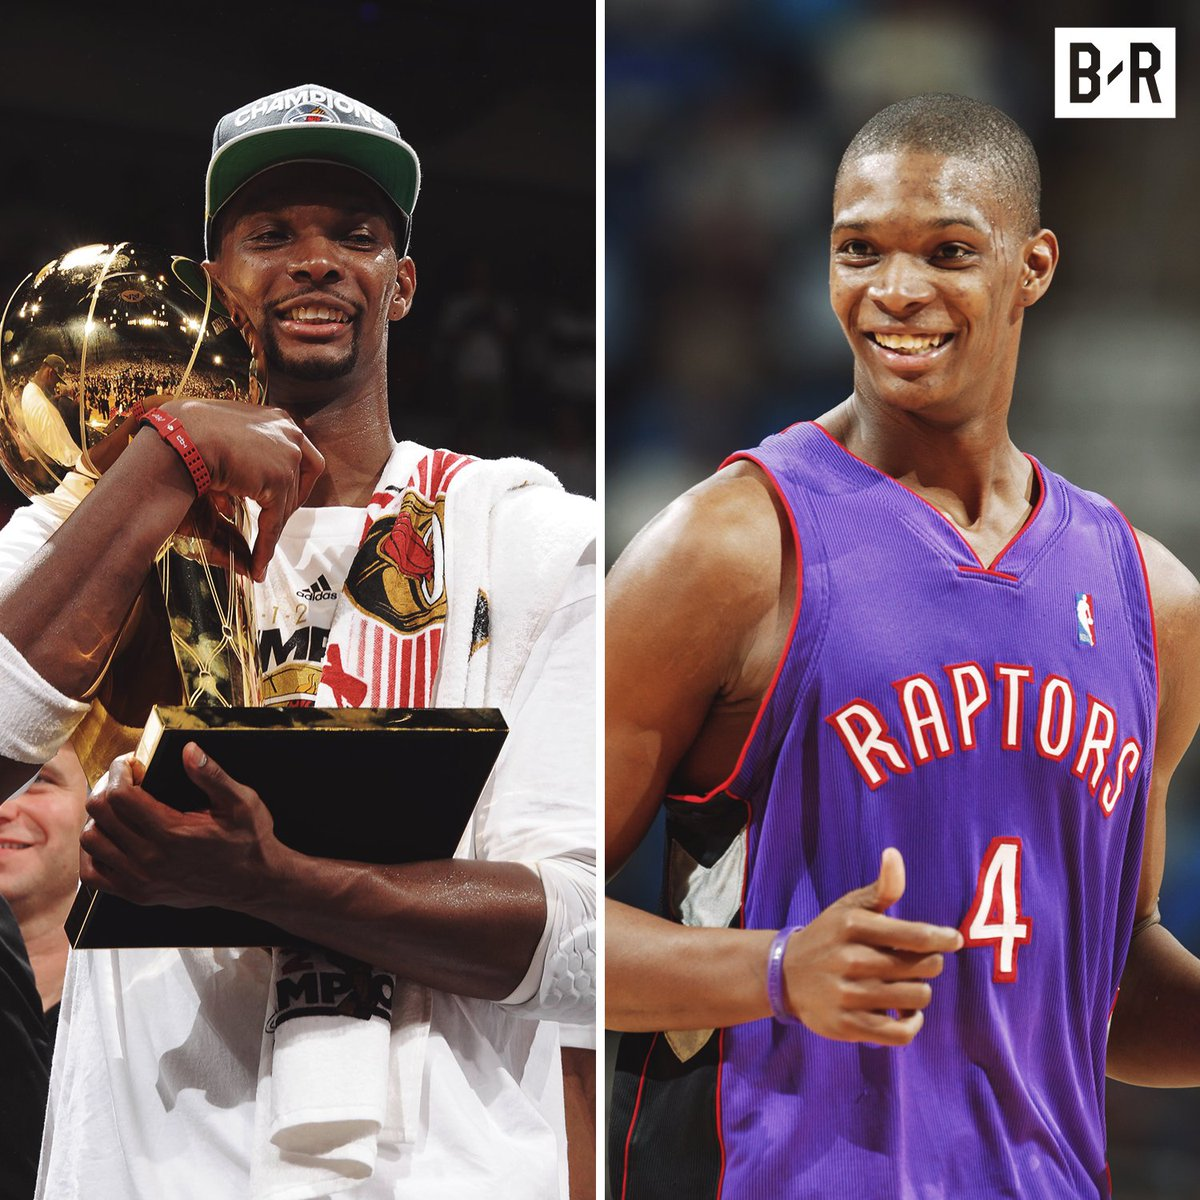 Chris Bosh plans to officially retire during his Heat ceremony in March (via @ringer)  ♦️ 2x champion ♦️ 11x All-Star ♦️ 19.2 PPG | 8.5 REB